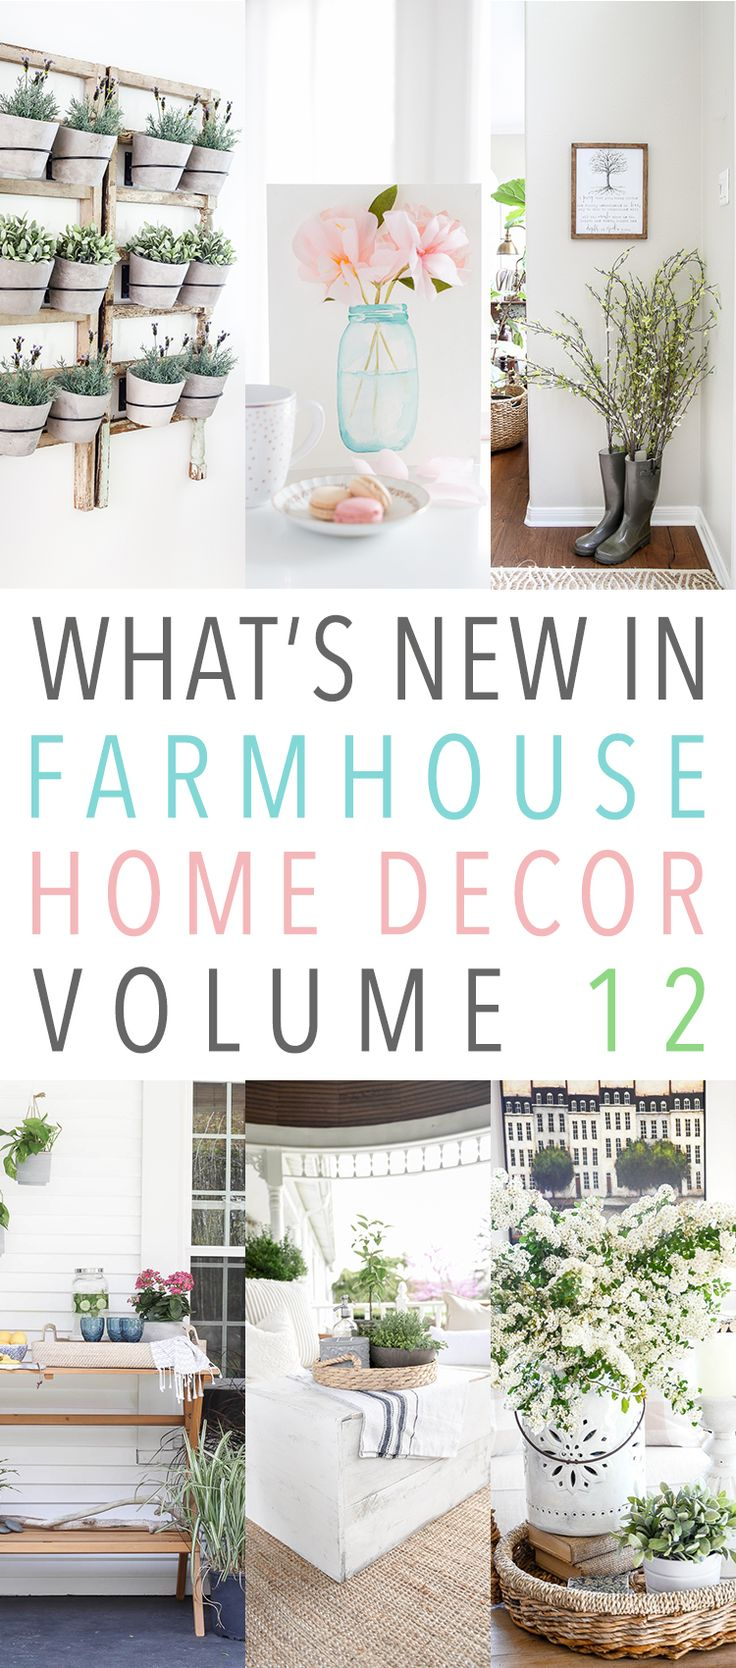 What s new in farmhouse home decor volume 12 for Home decor on highway 6